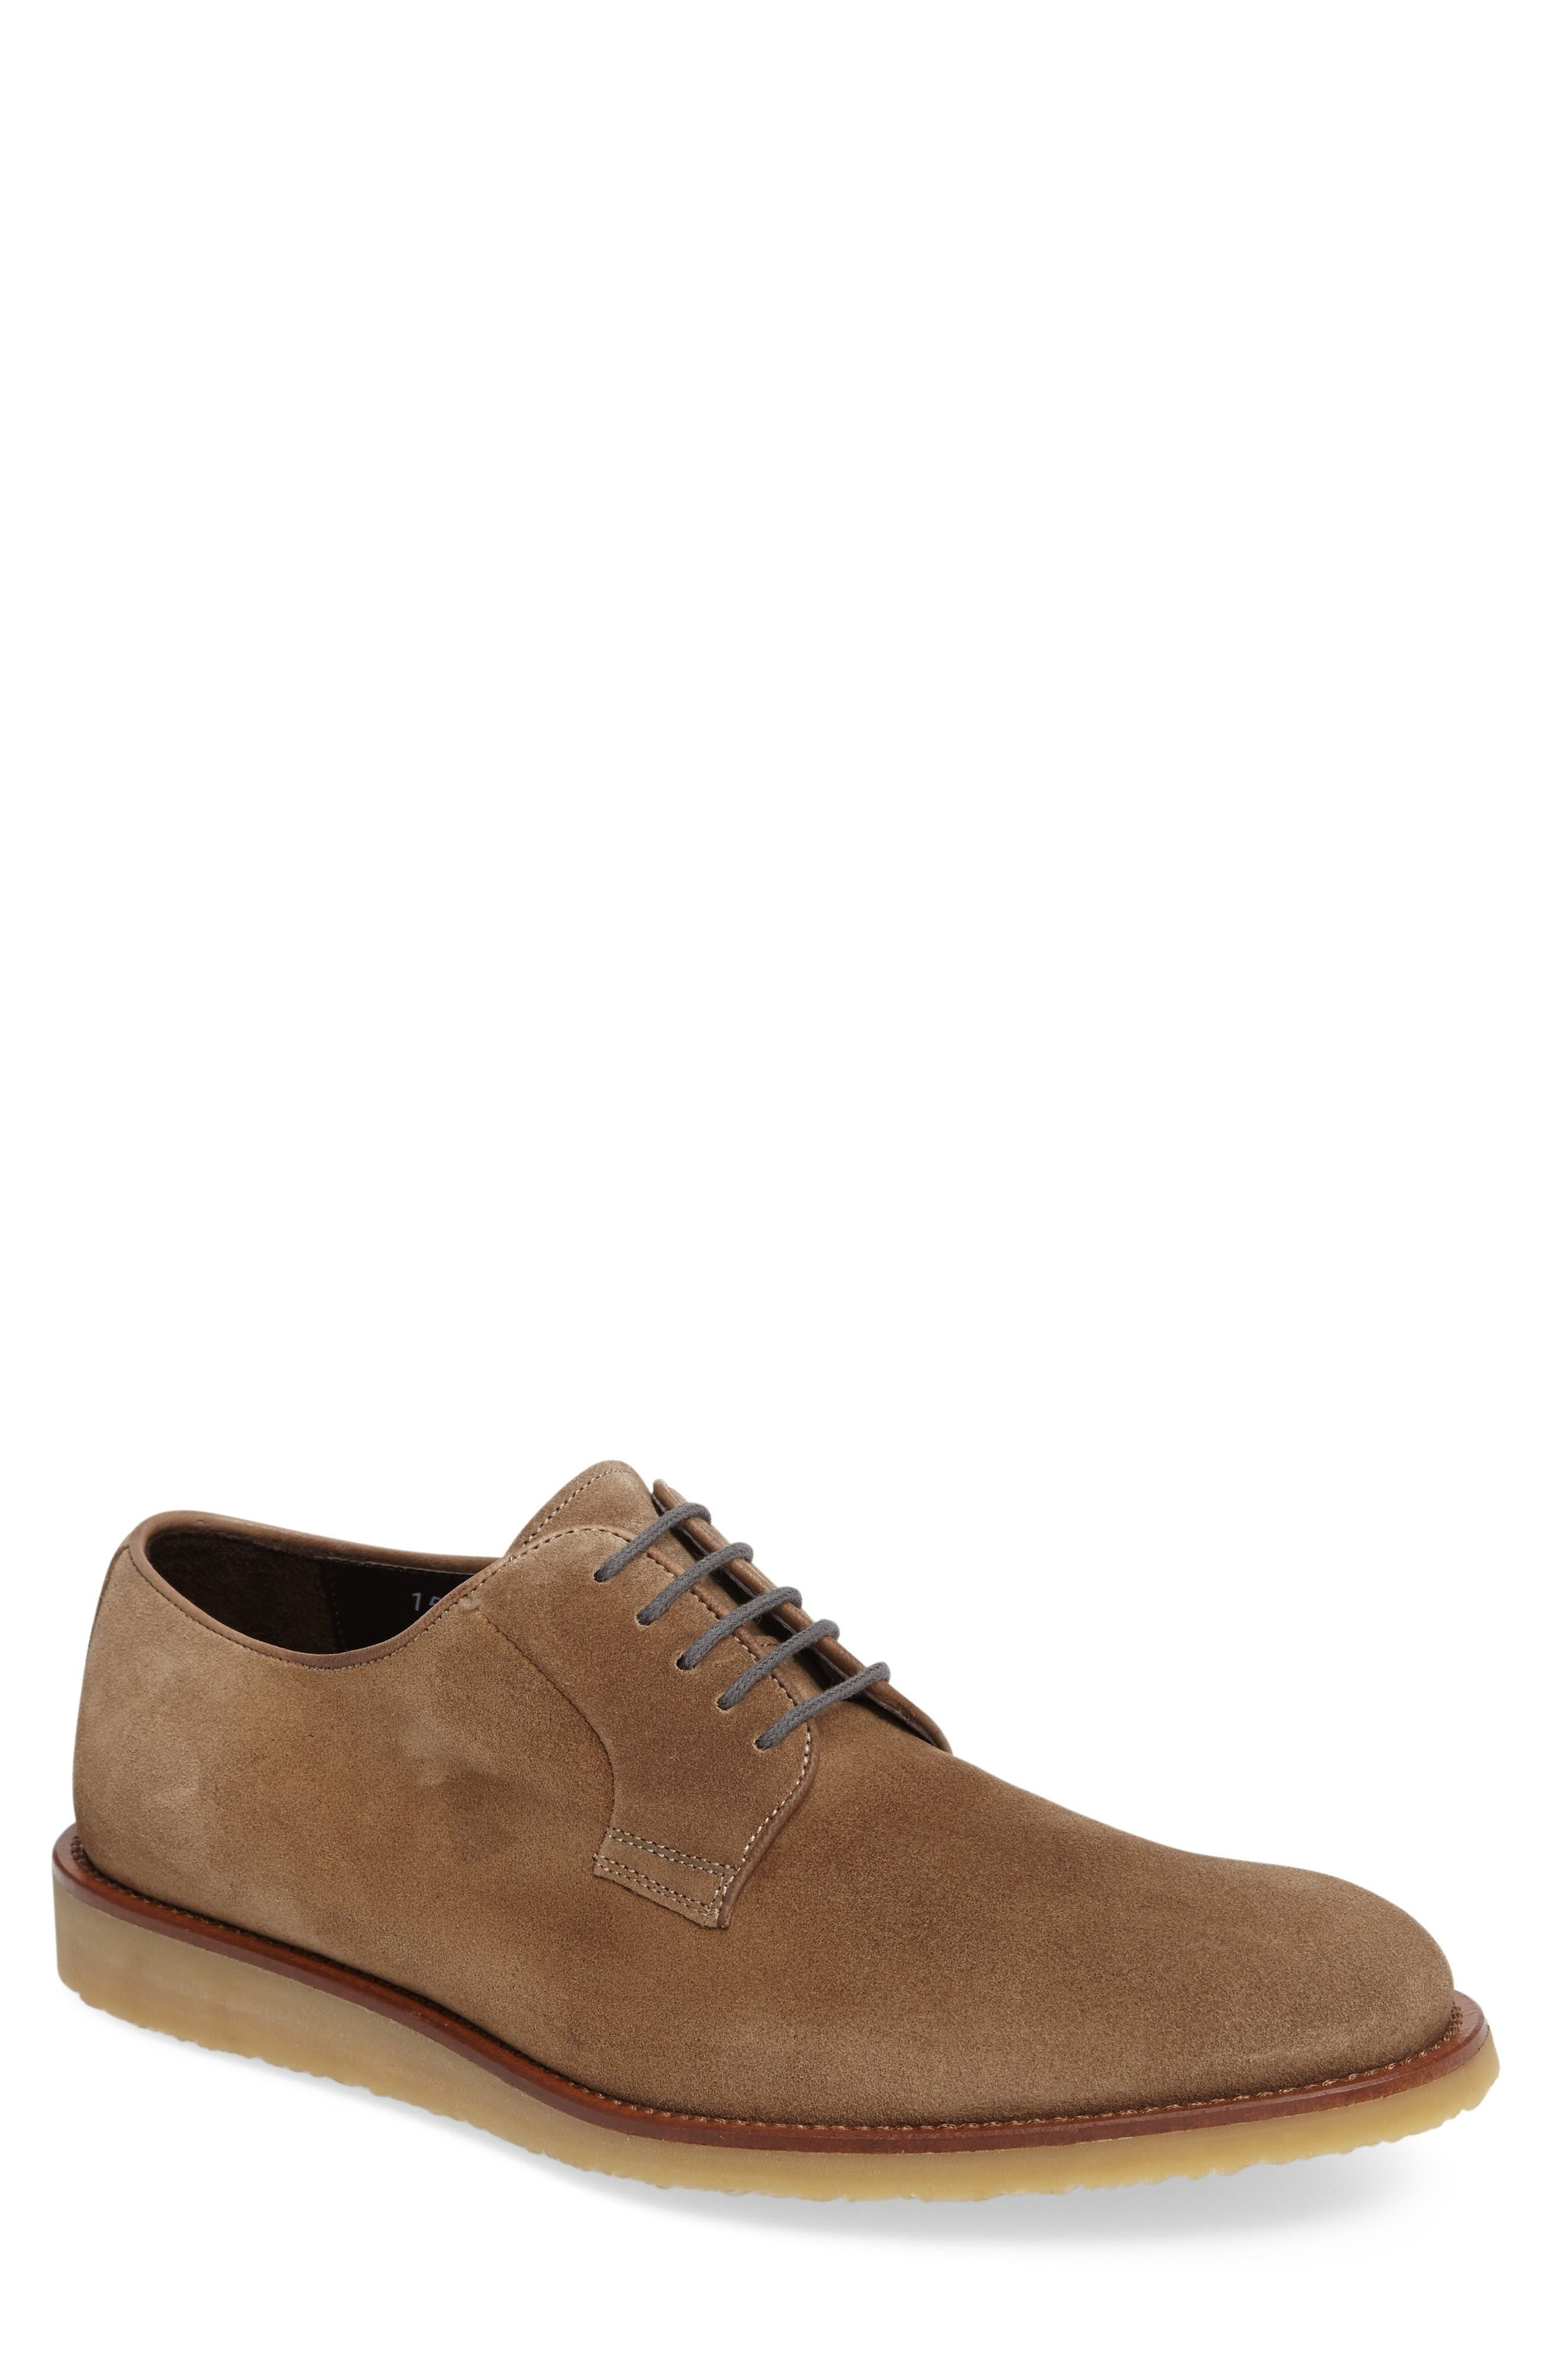 Main Image - To Boot New York Jack Buck Shoe (Men)